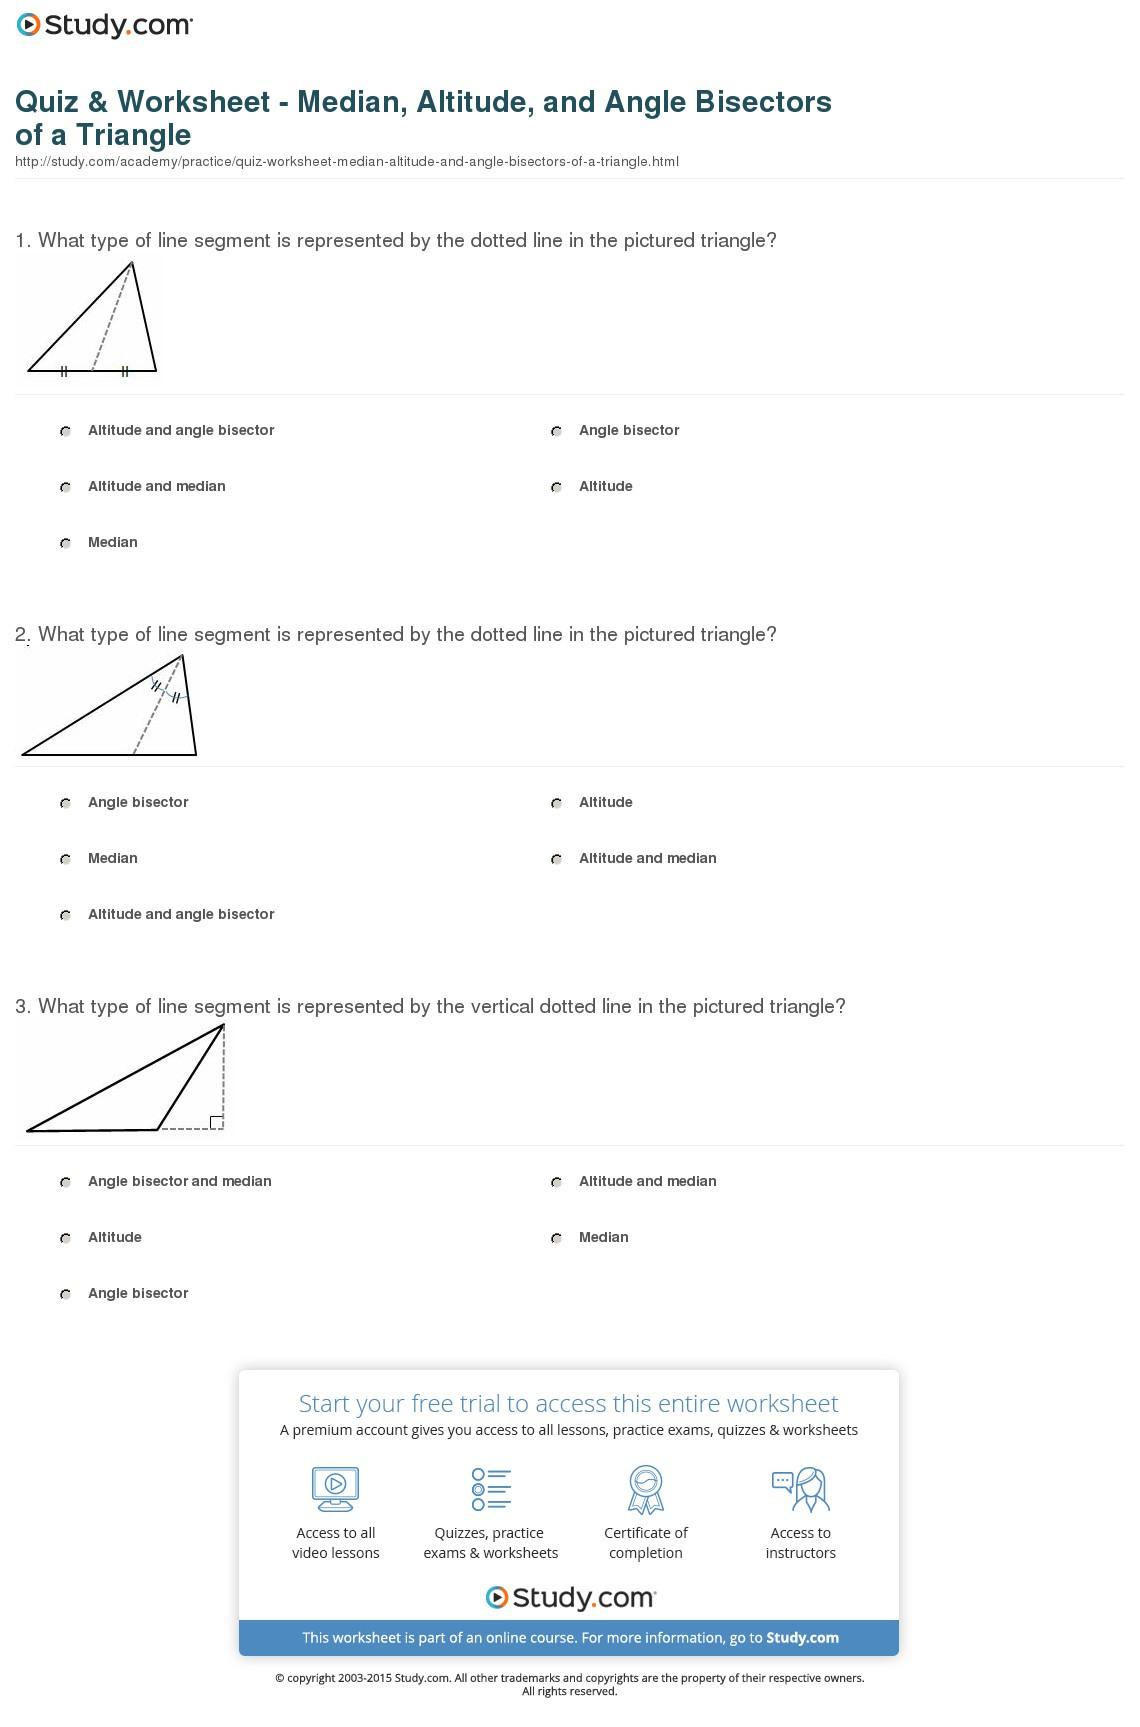 Quiz Worksheet Median Altitude And Angle Bisectors Of A